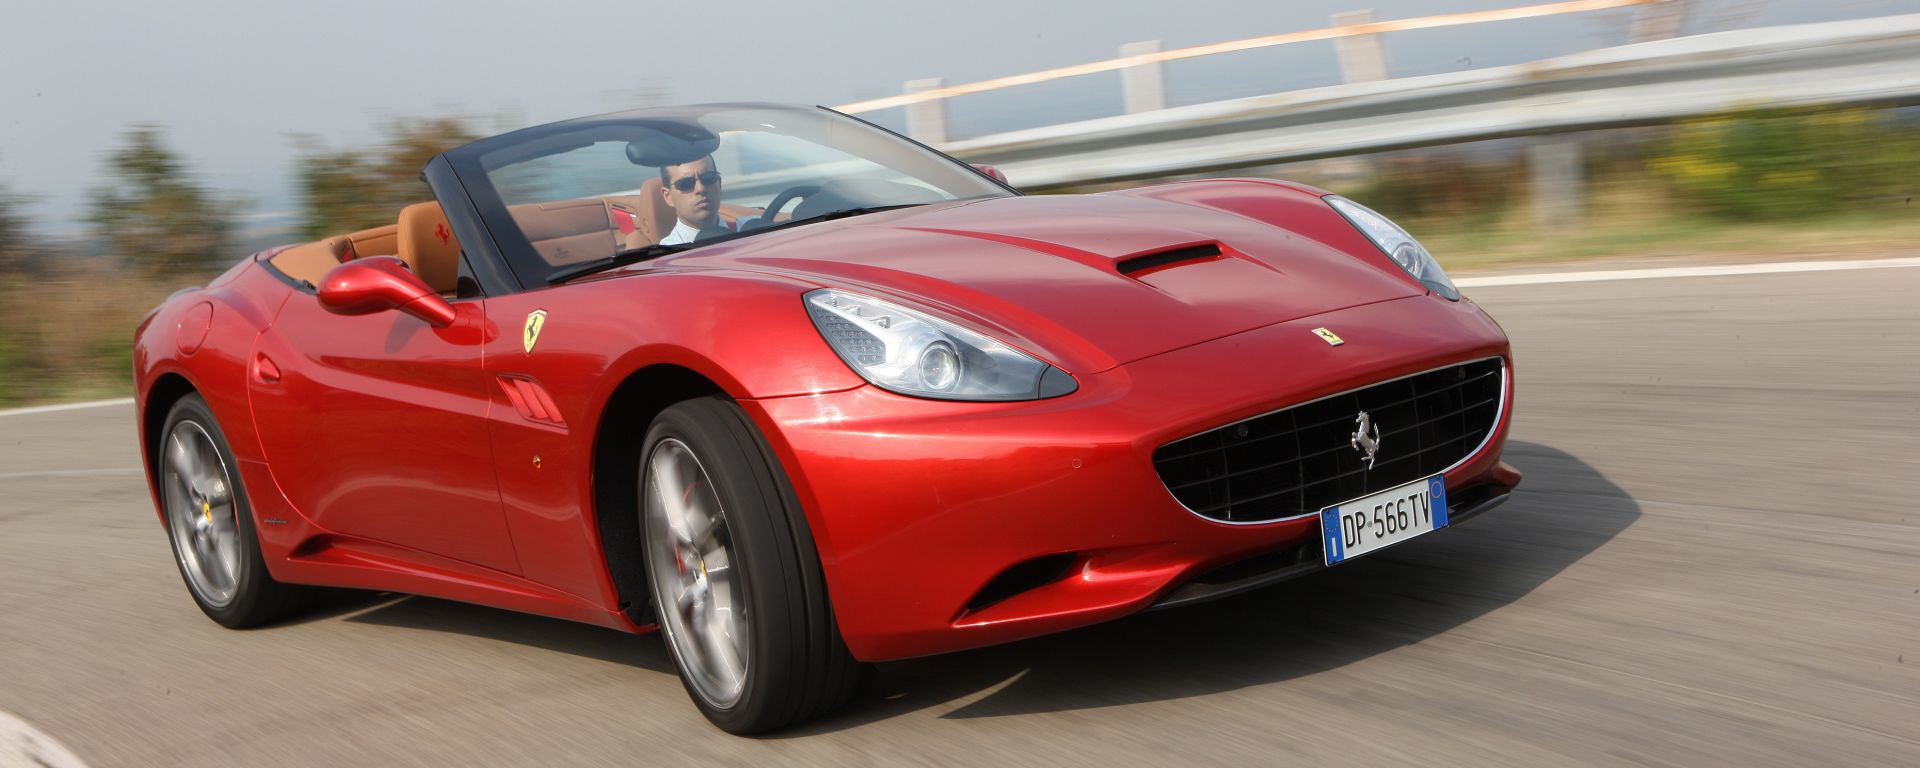 Ferrari California my 2012, ora anche in video